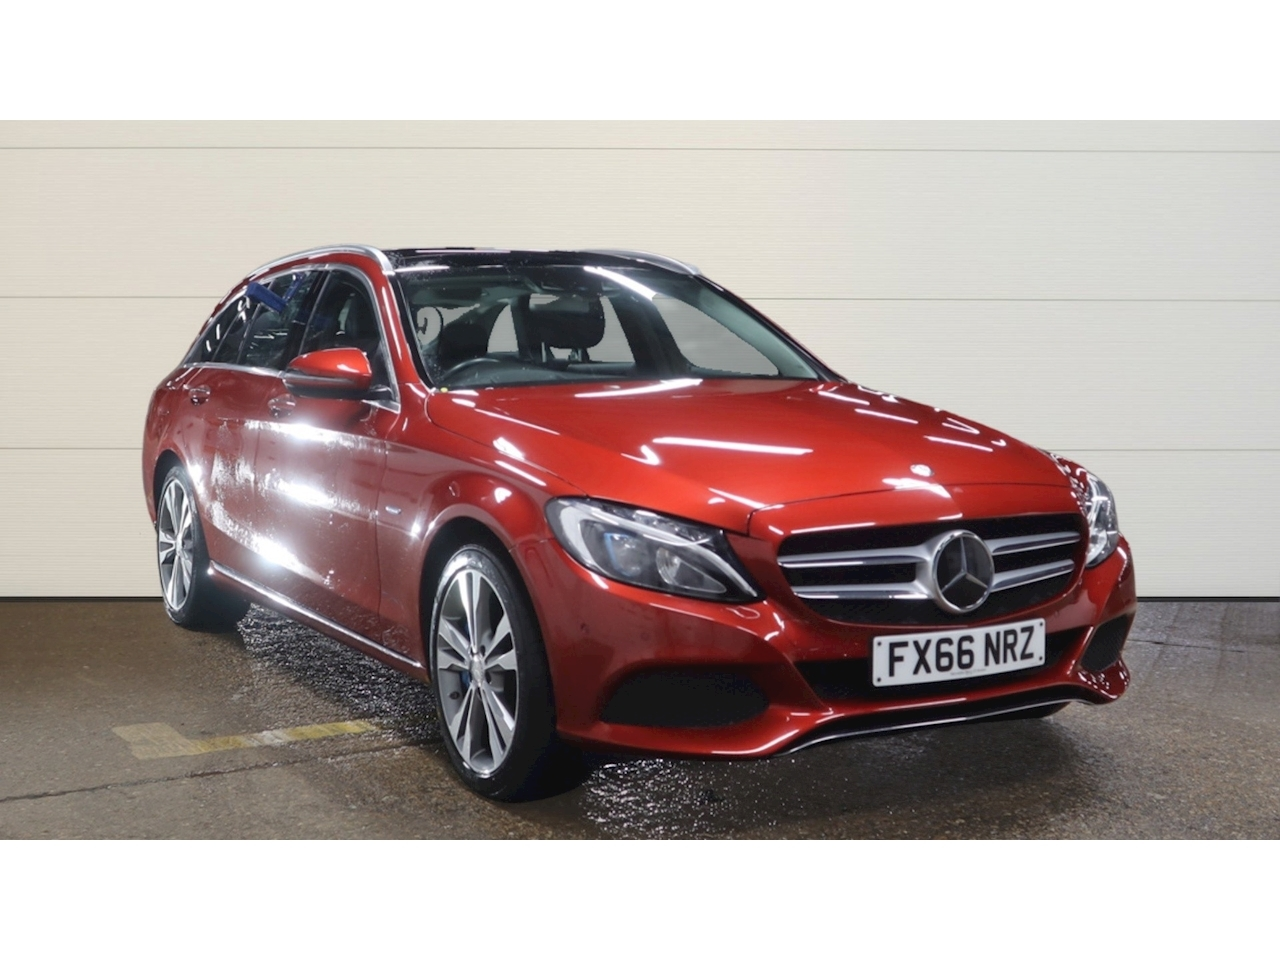 Mercedes-Benz 2.0 C350e 6.4kWh Sport (Premium Plus) Estate 5dr Petrol Plug-in Hybrid G-Tronic+ (s/s) 18in Alloy (293 ps)